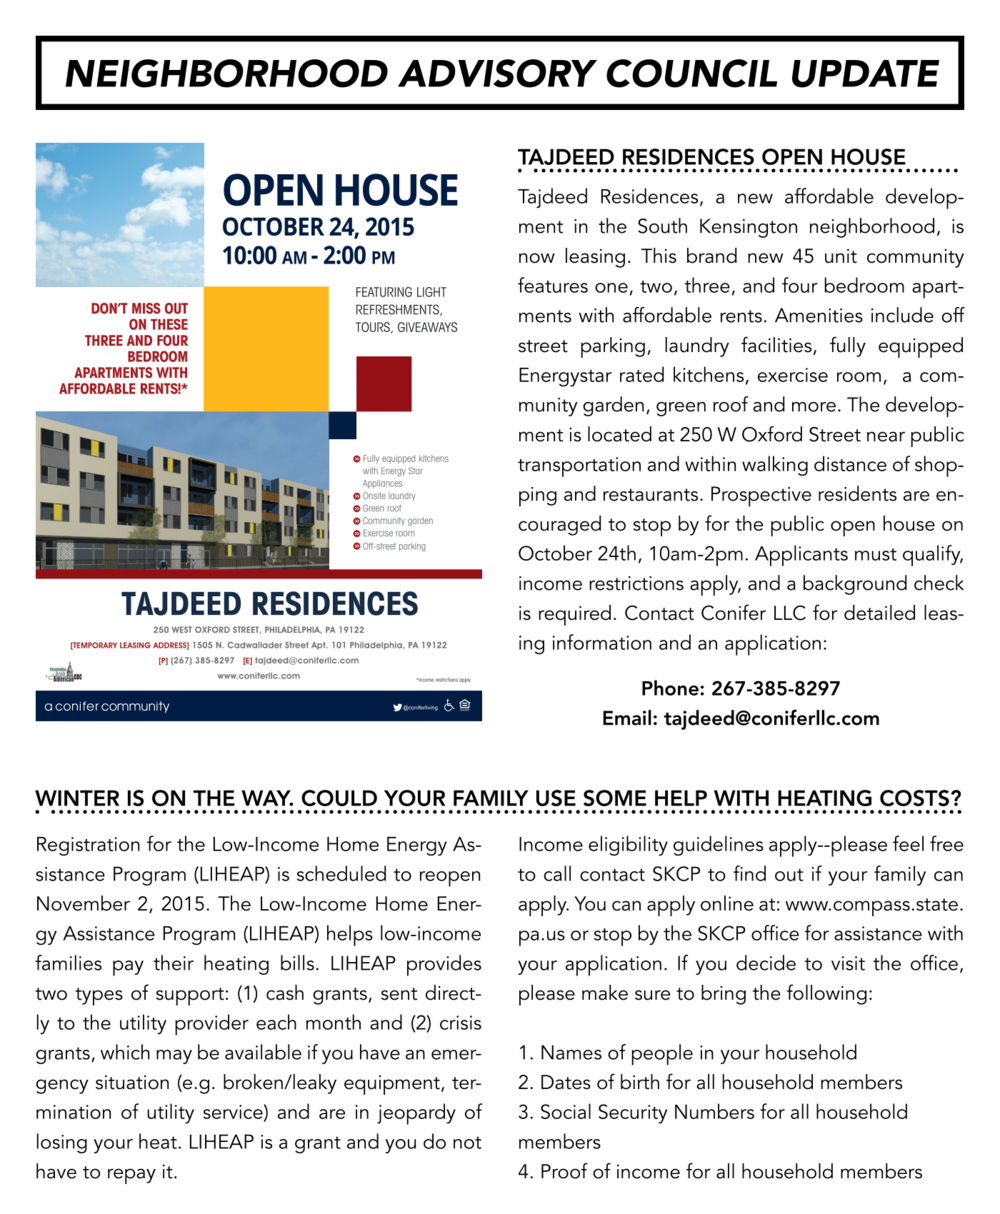 2015_10_Quarterly Newsletter_LM_draft3-6.png